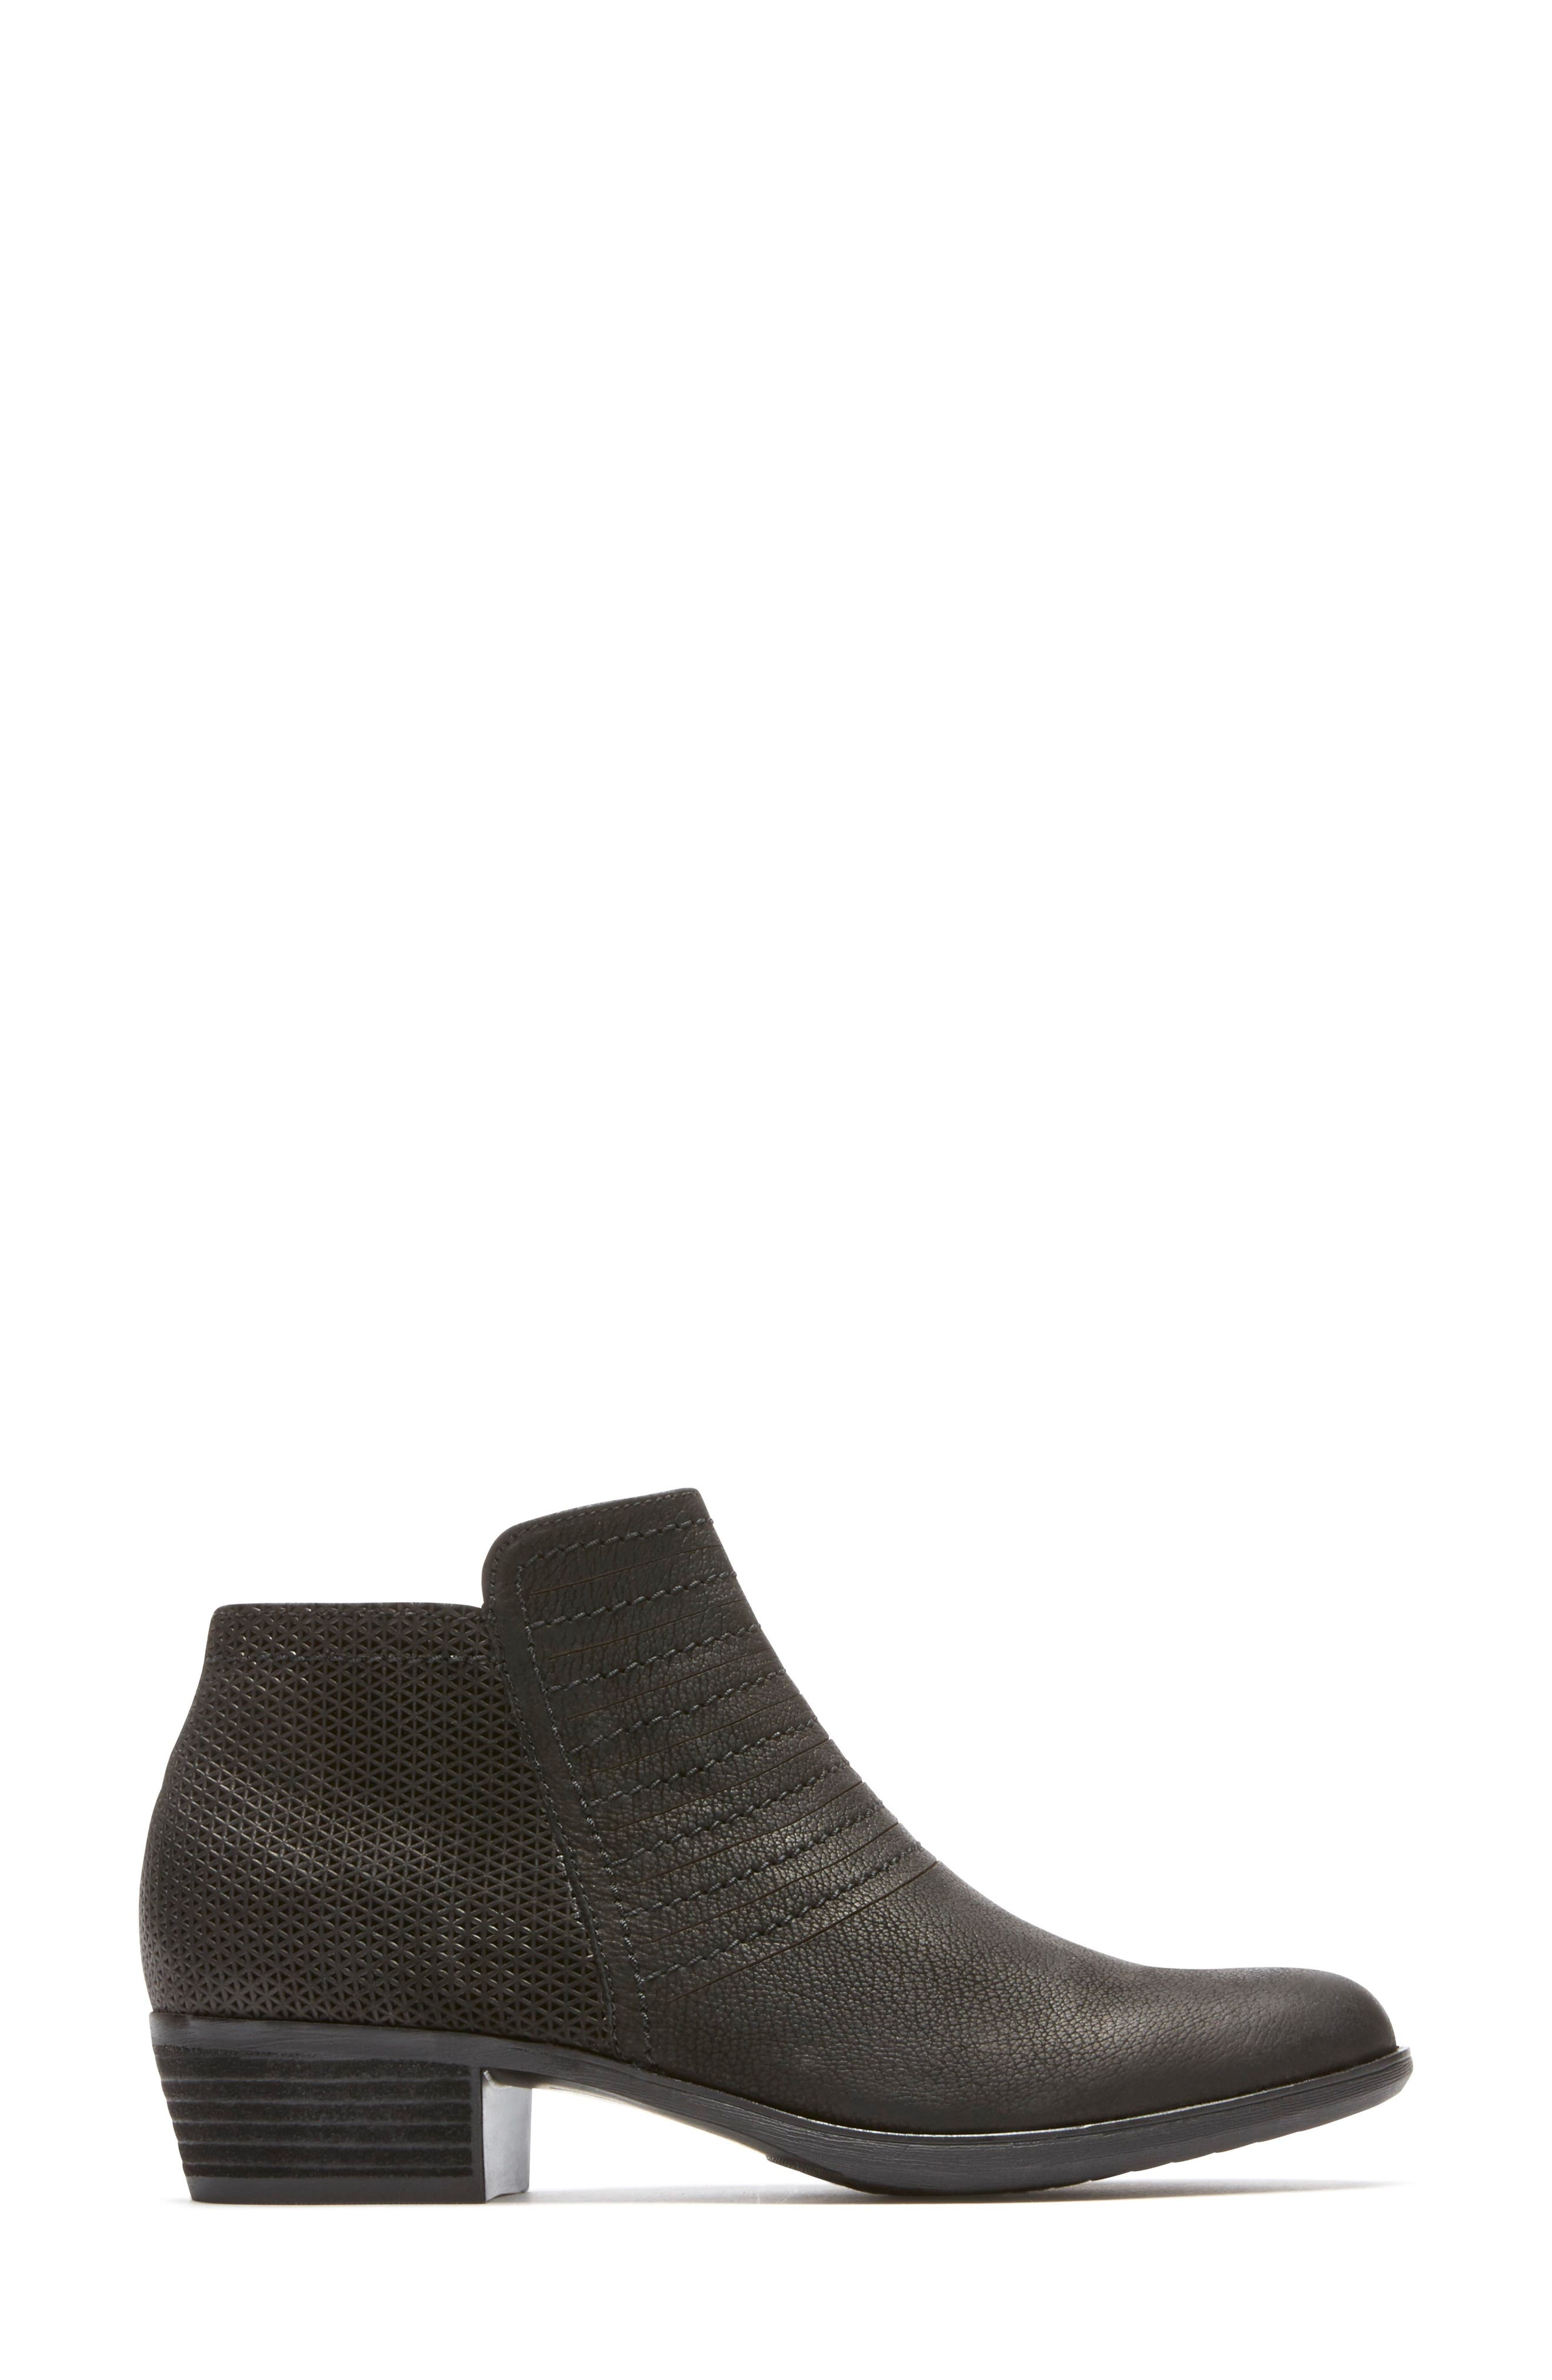 ROCKPORT,                             Vanna Strappy Bootie,                             Alternate thumbnail 3, color,                             BLACK NUBUCK